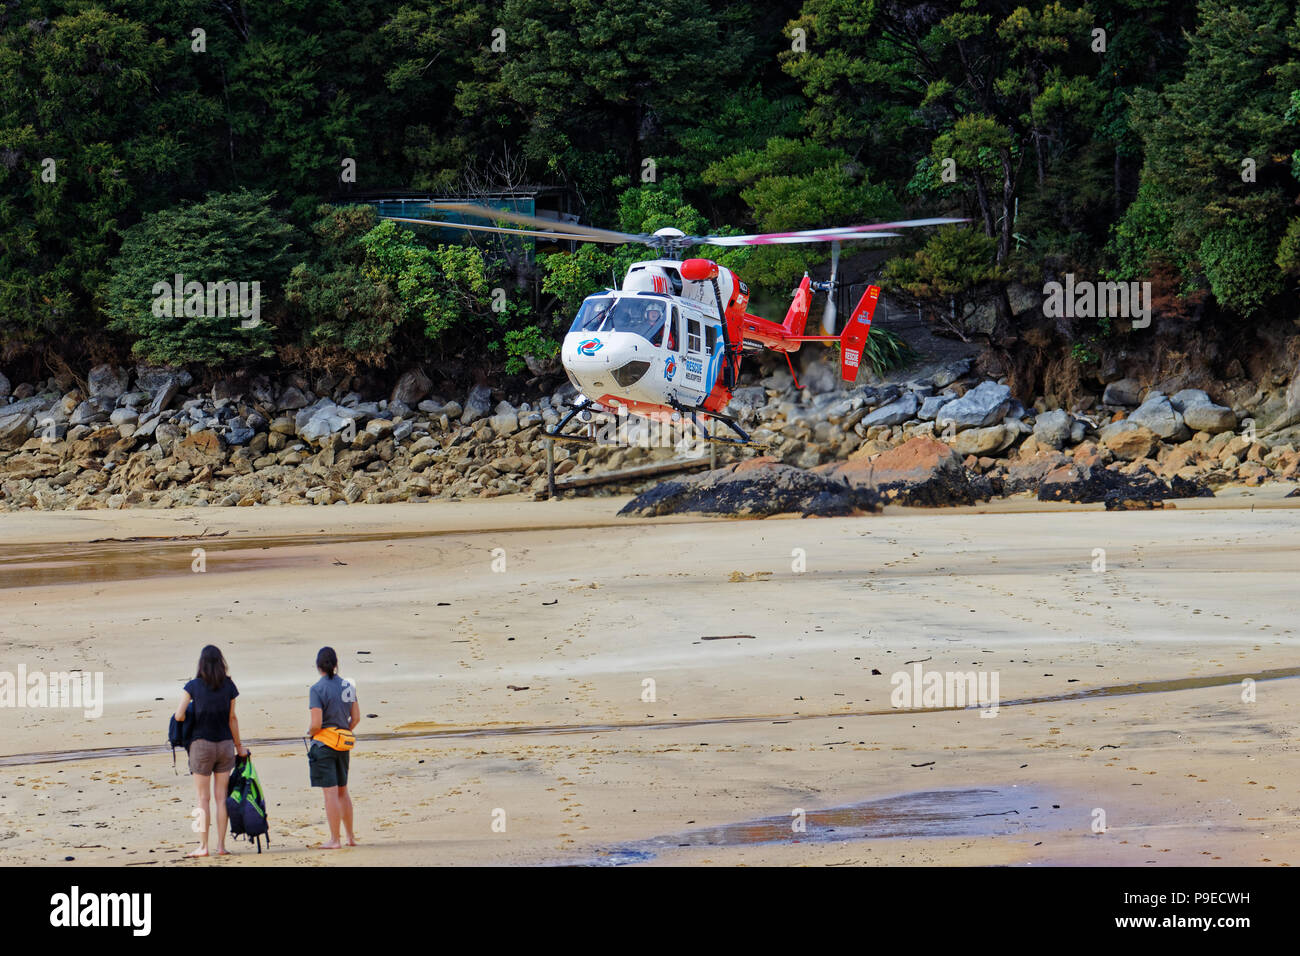 Rescue helicopter at Anchorage Bay, Abel Tasman National Park, New Zealand - Stock Image